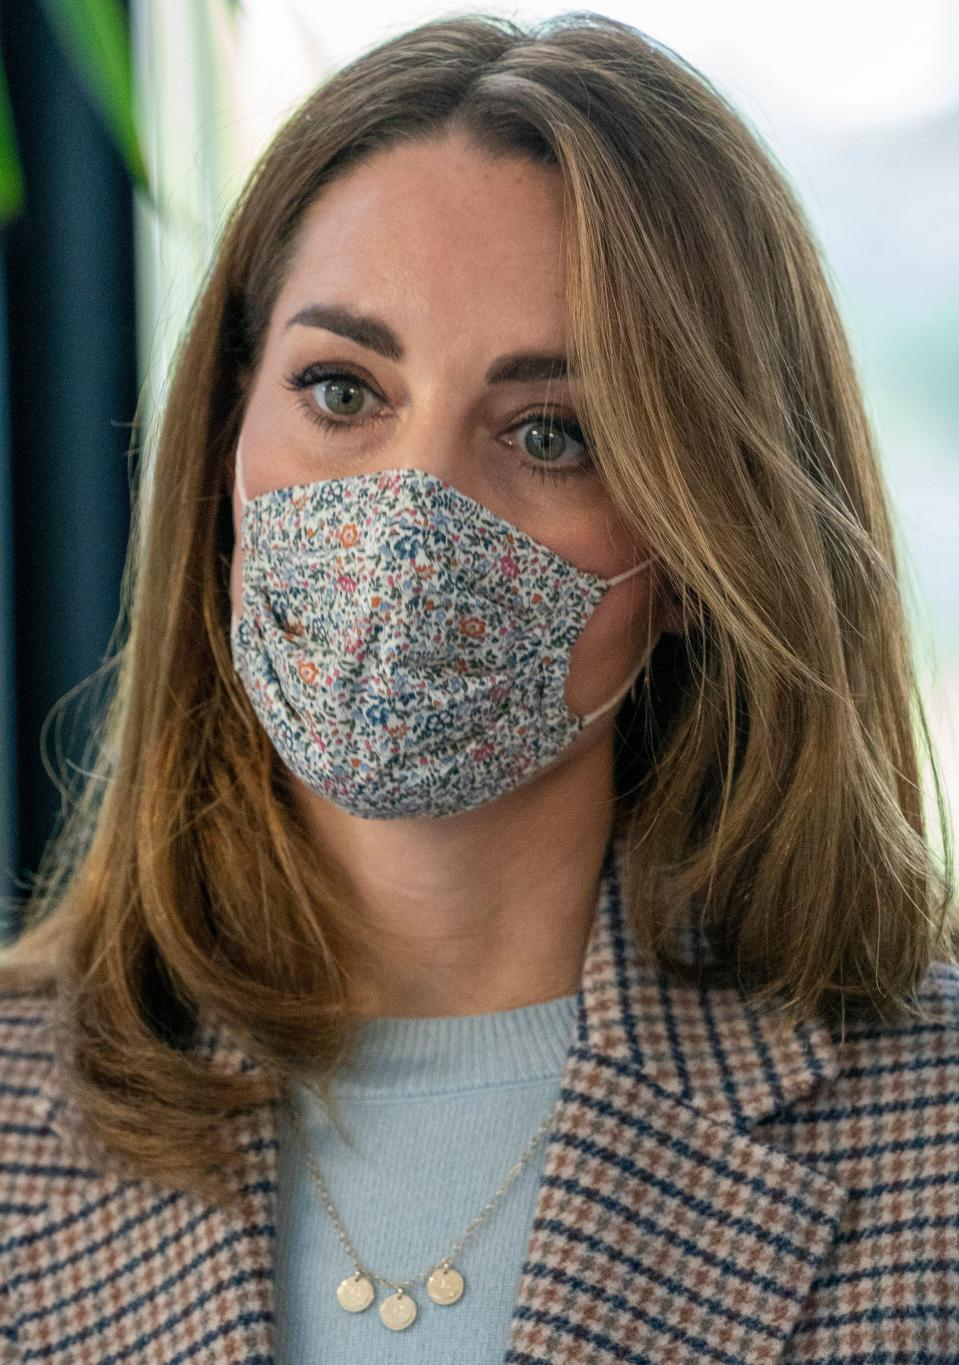 Britain's Catherine, Duchess of Cambridge wears a facemask during her visit to hear how the novel coronavirus COVID-19 pandemic has impacted students' university life and what national measures have been put in place to support student mental health, at the University of Derby, in central England on October 6, 2020. - students (Photo by ARTHUR EDWARDS / POOL / AFP) (Photo by ARTHUR EDWARDS/POOL/AFP via Getty Images)